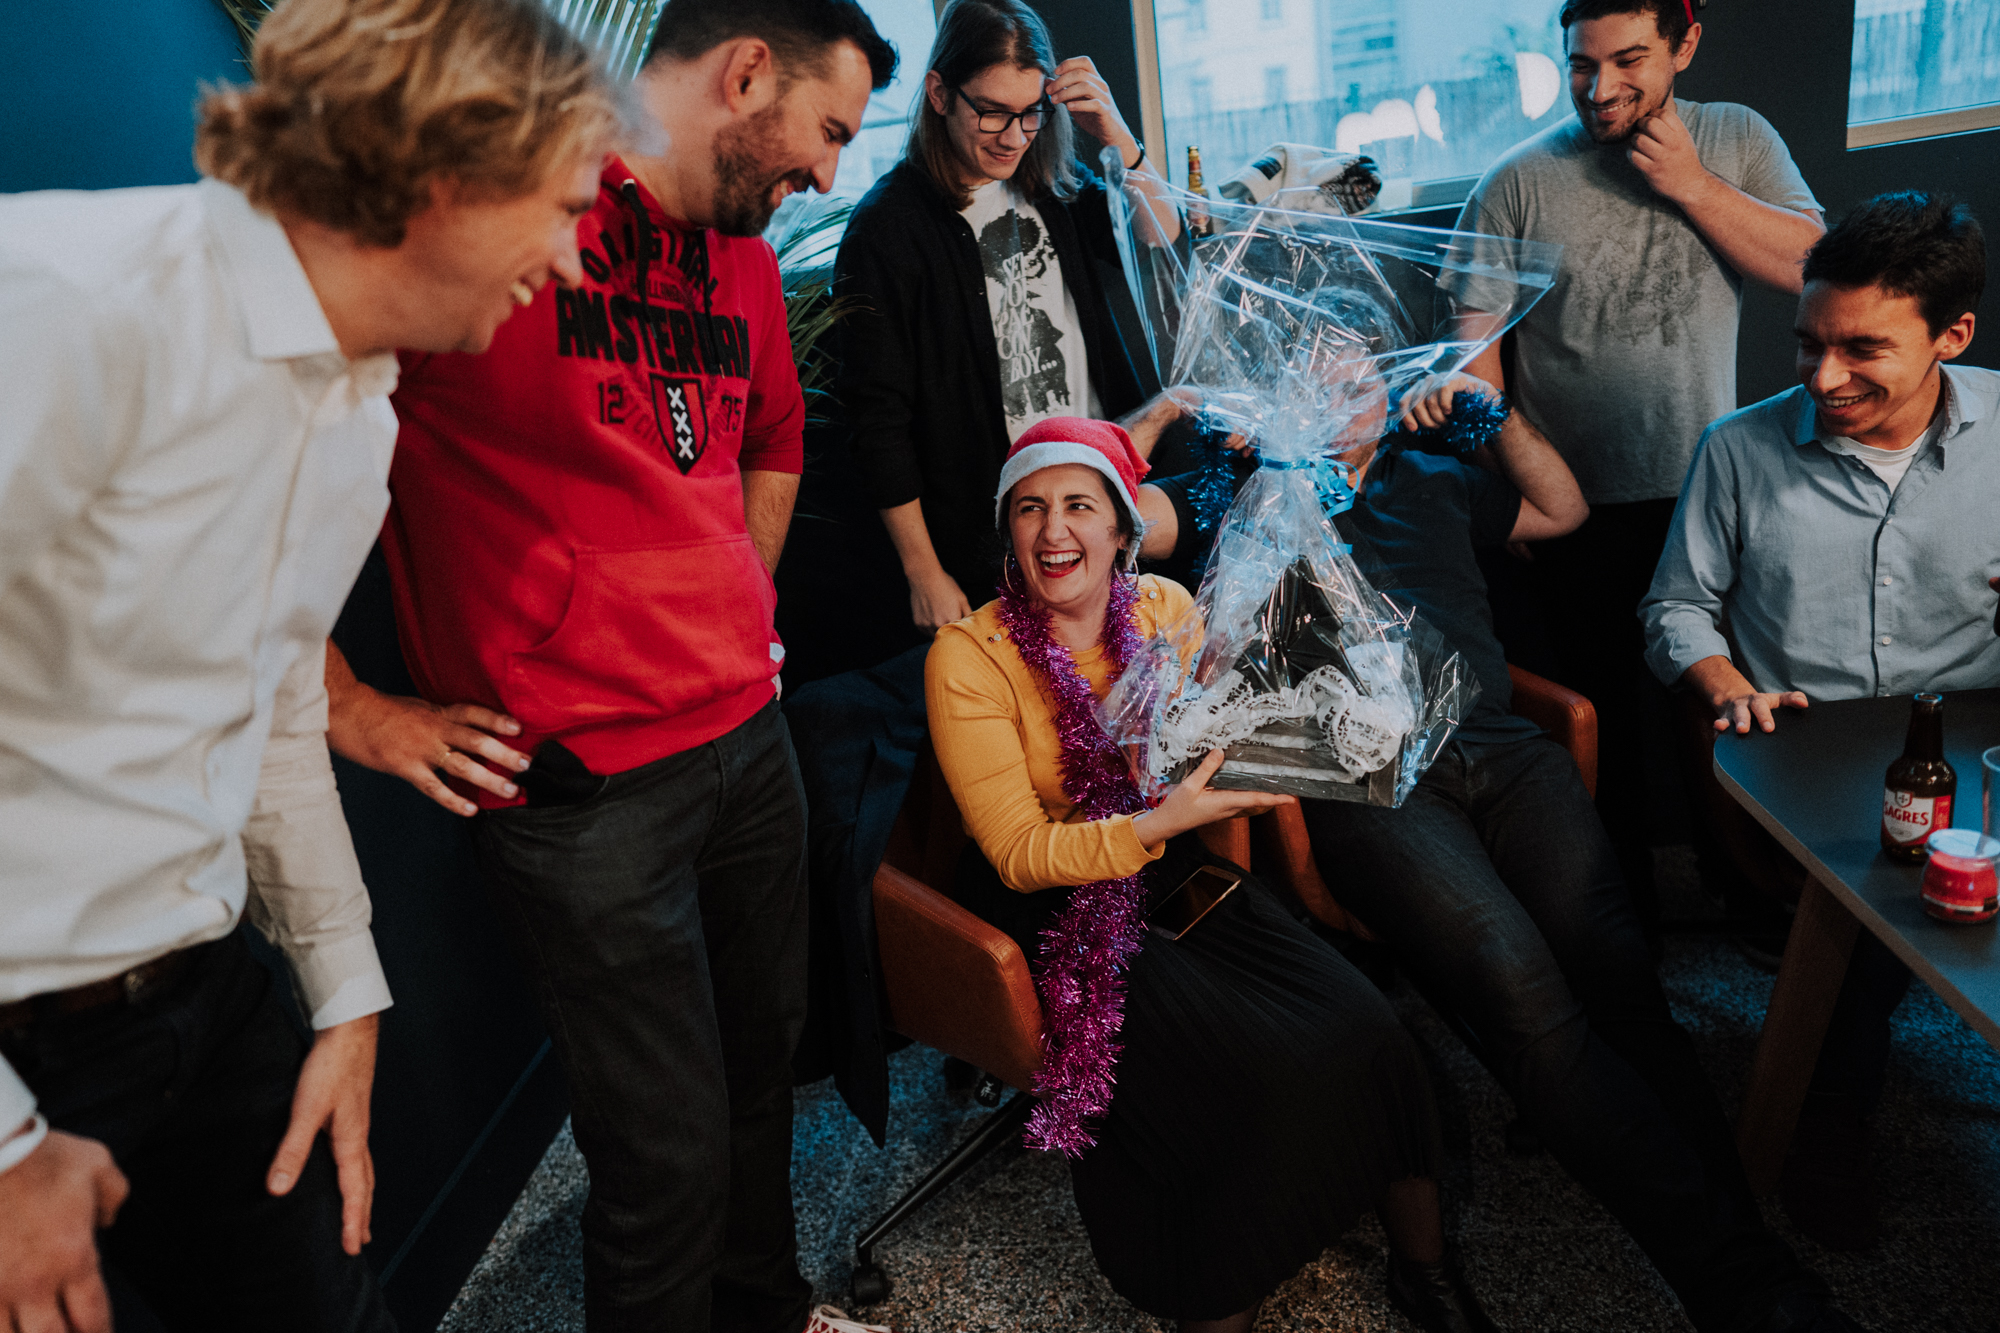 At Nmbrs, we're a tight-knit family. In the image, there is Rita, our Recruitment Lead, surrounded by her team from a game we did during the Christmas party of 2019 in Lisbon. They're laughing and celebrating having won the game.